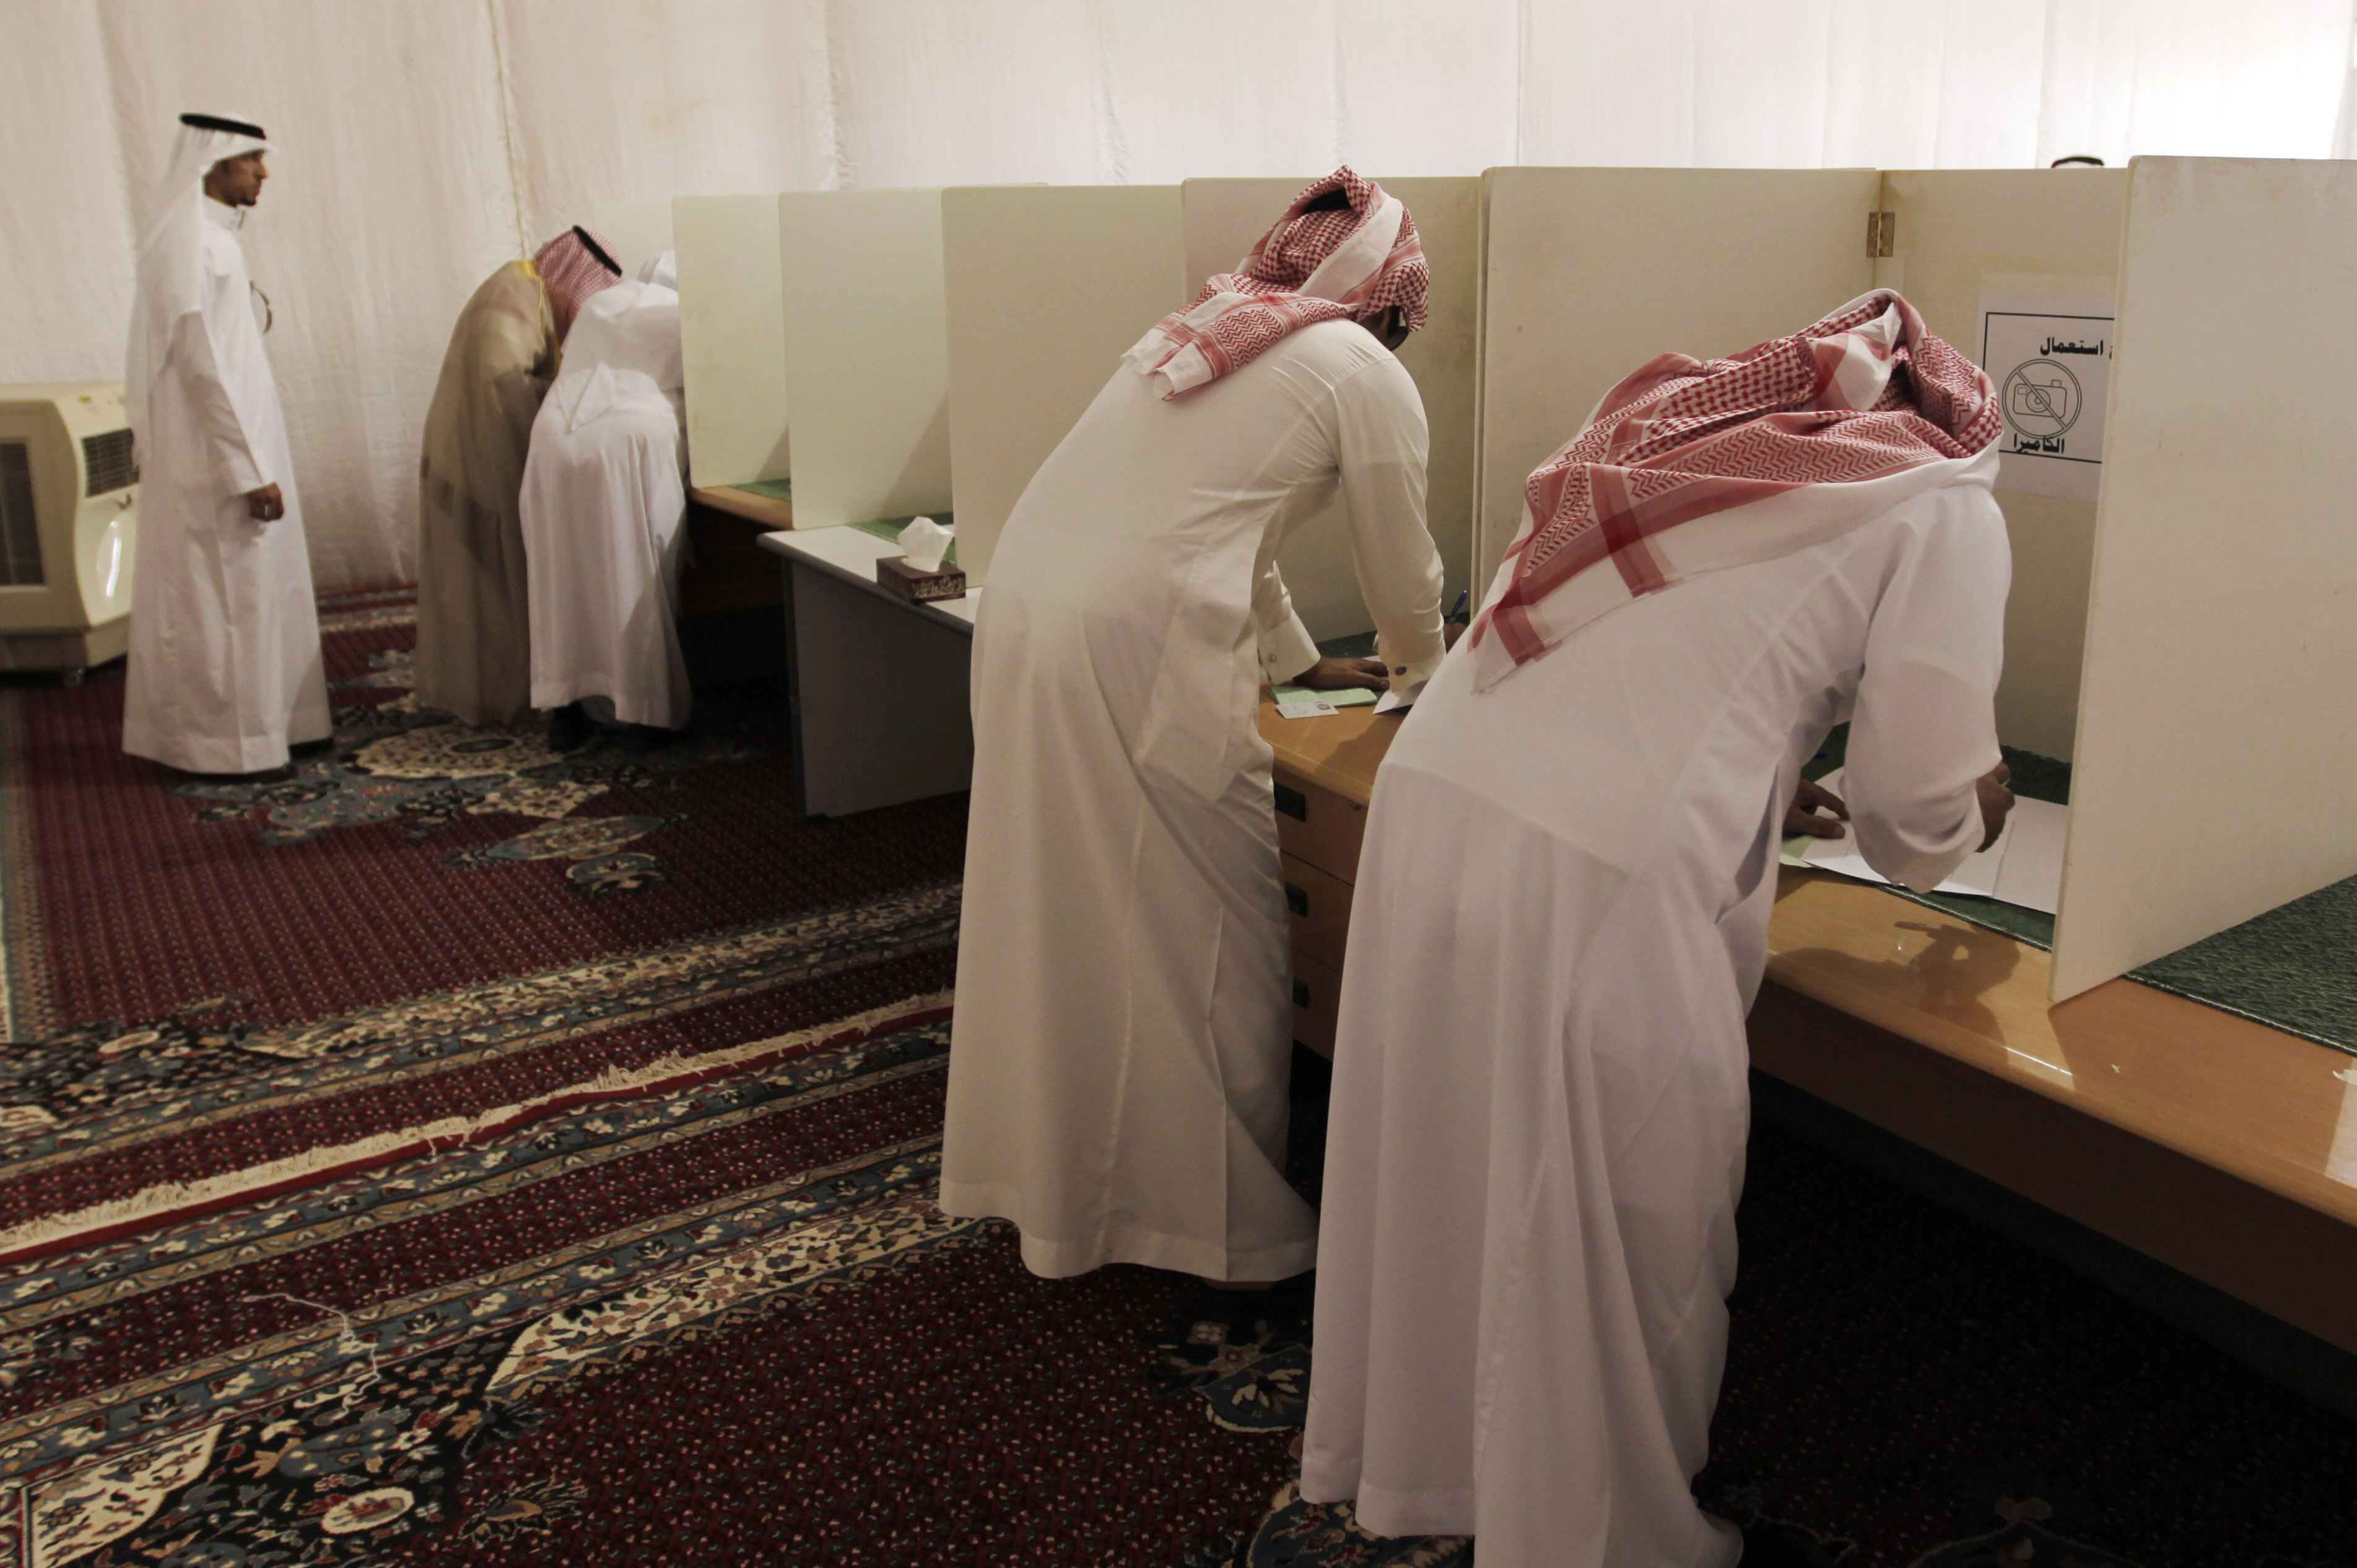 Voters cast ballots in municipal elections in Saudi Arabia. In 2011, King Abdullah of Saudi Arabia granted women the right to vote and run in municipal elections -- but not until 2015.